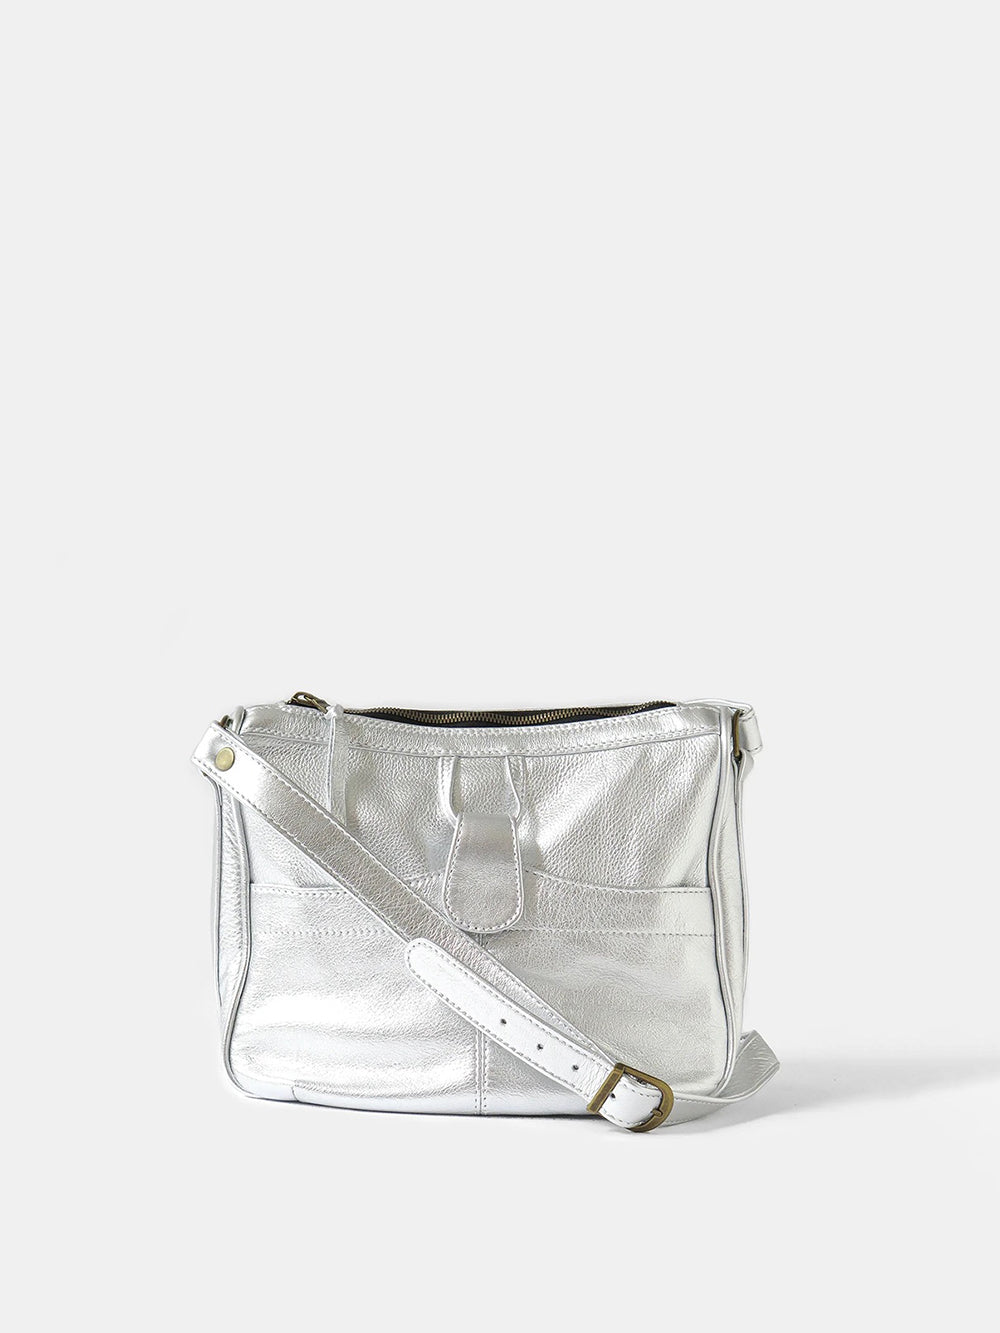 twiggy shoulder bag in silver